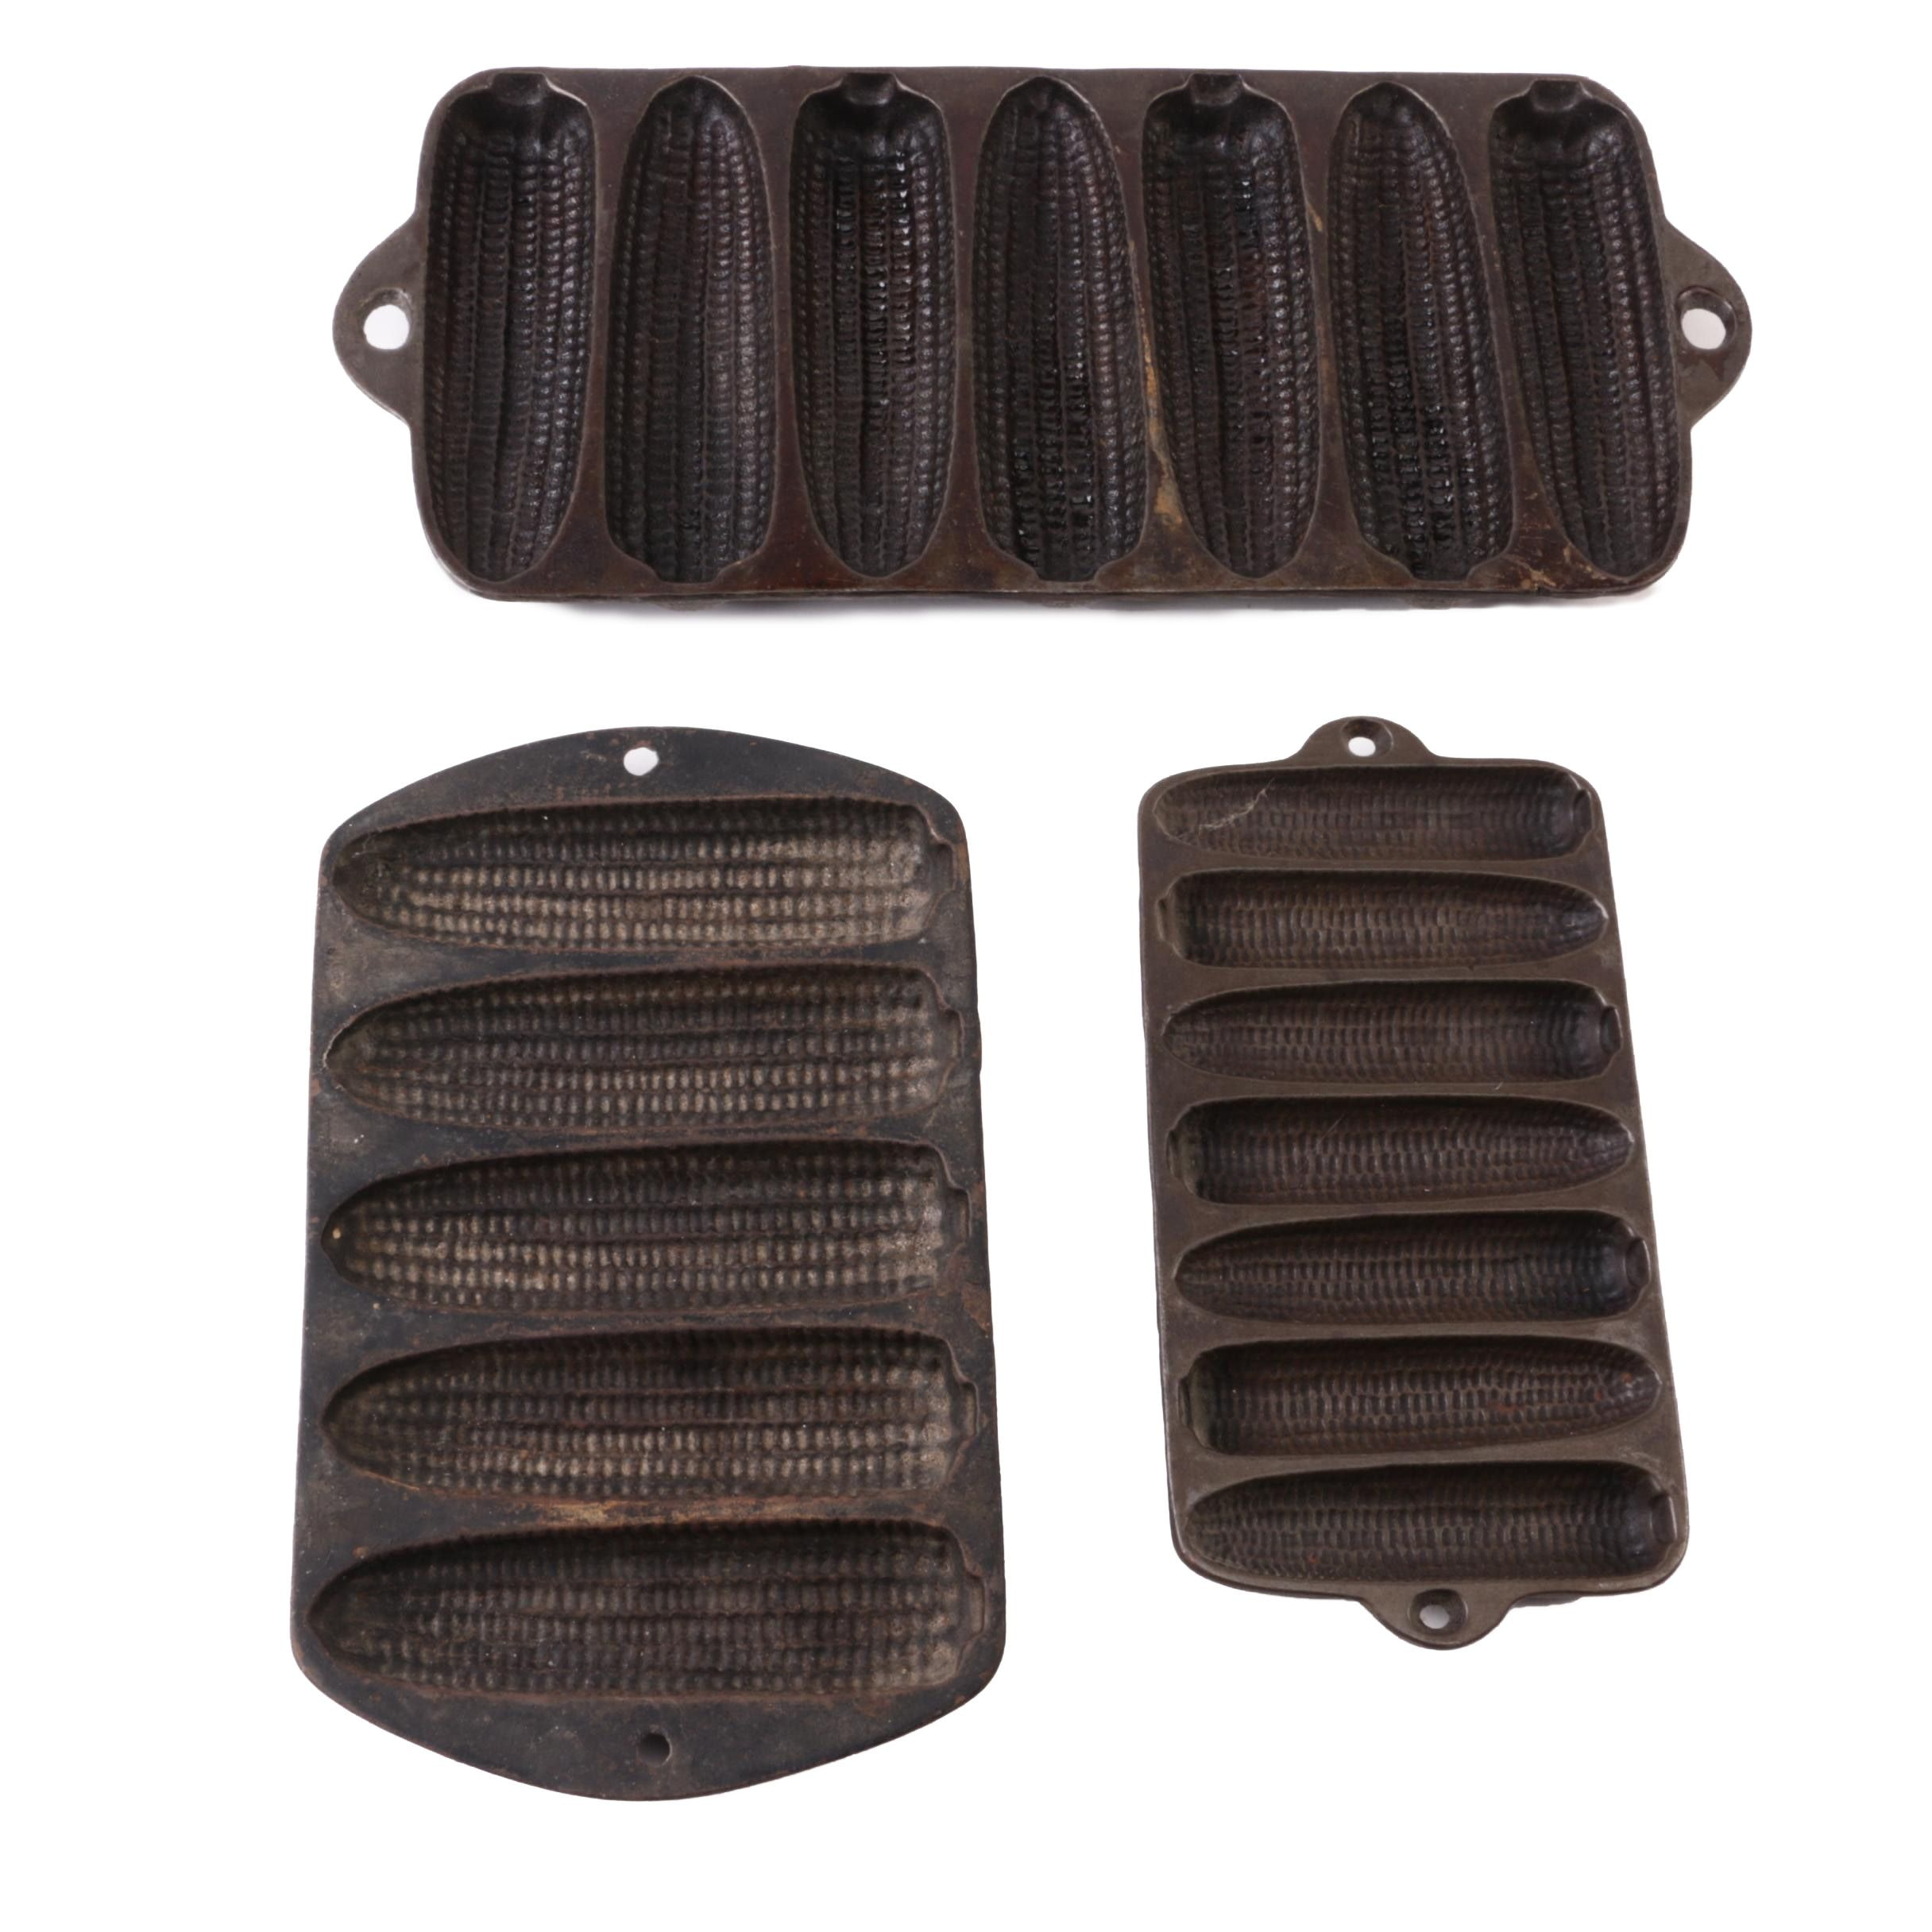 Vintage Cast Iron Corn Bread Molds